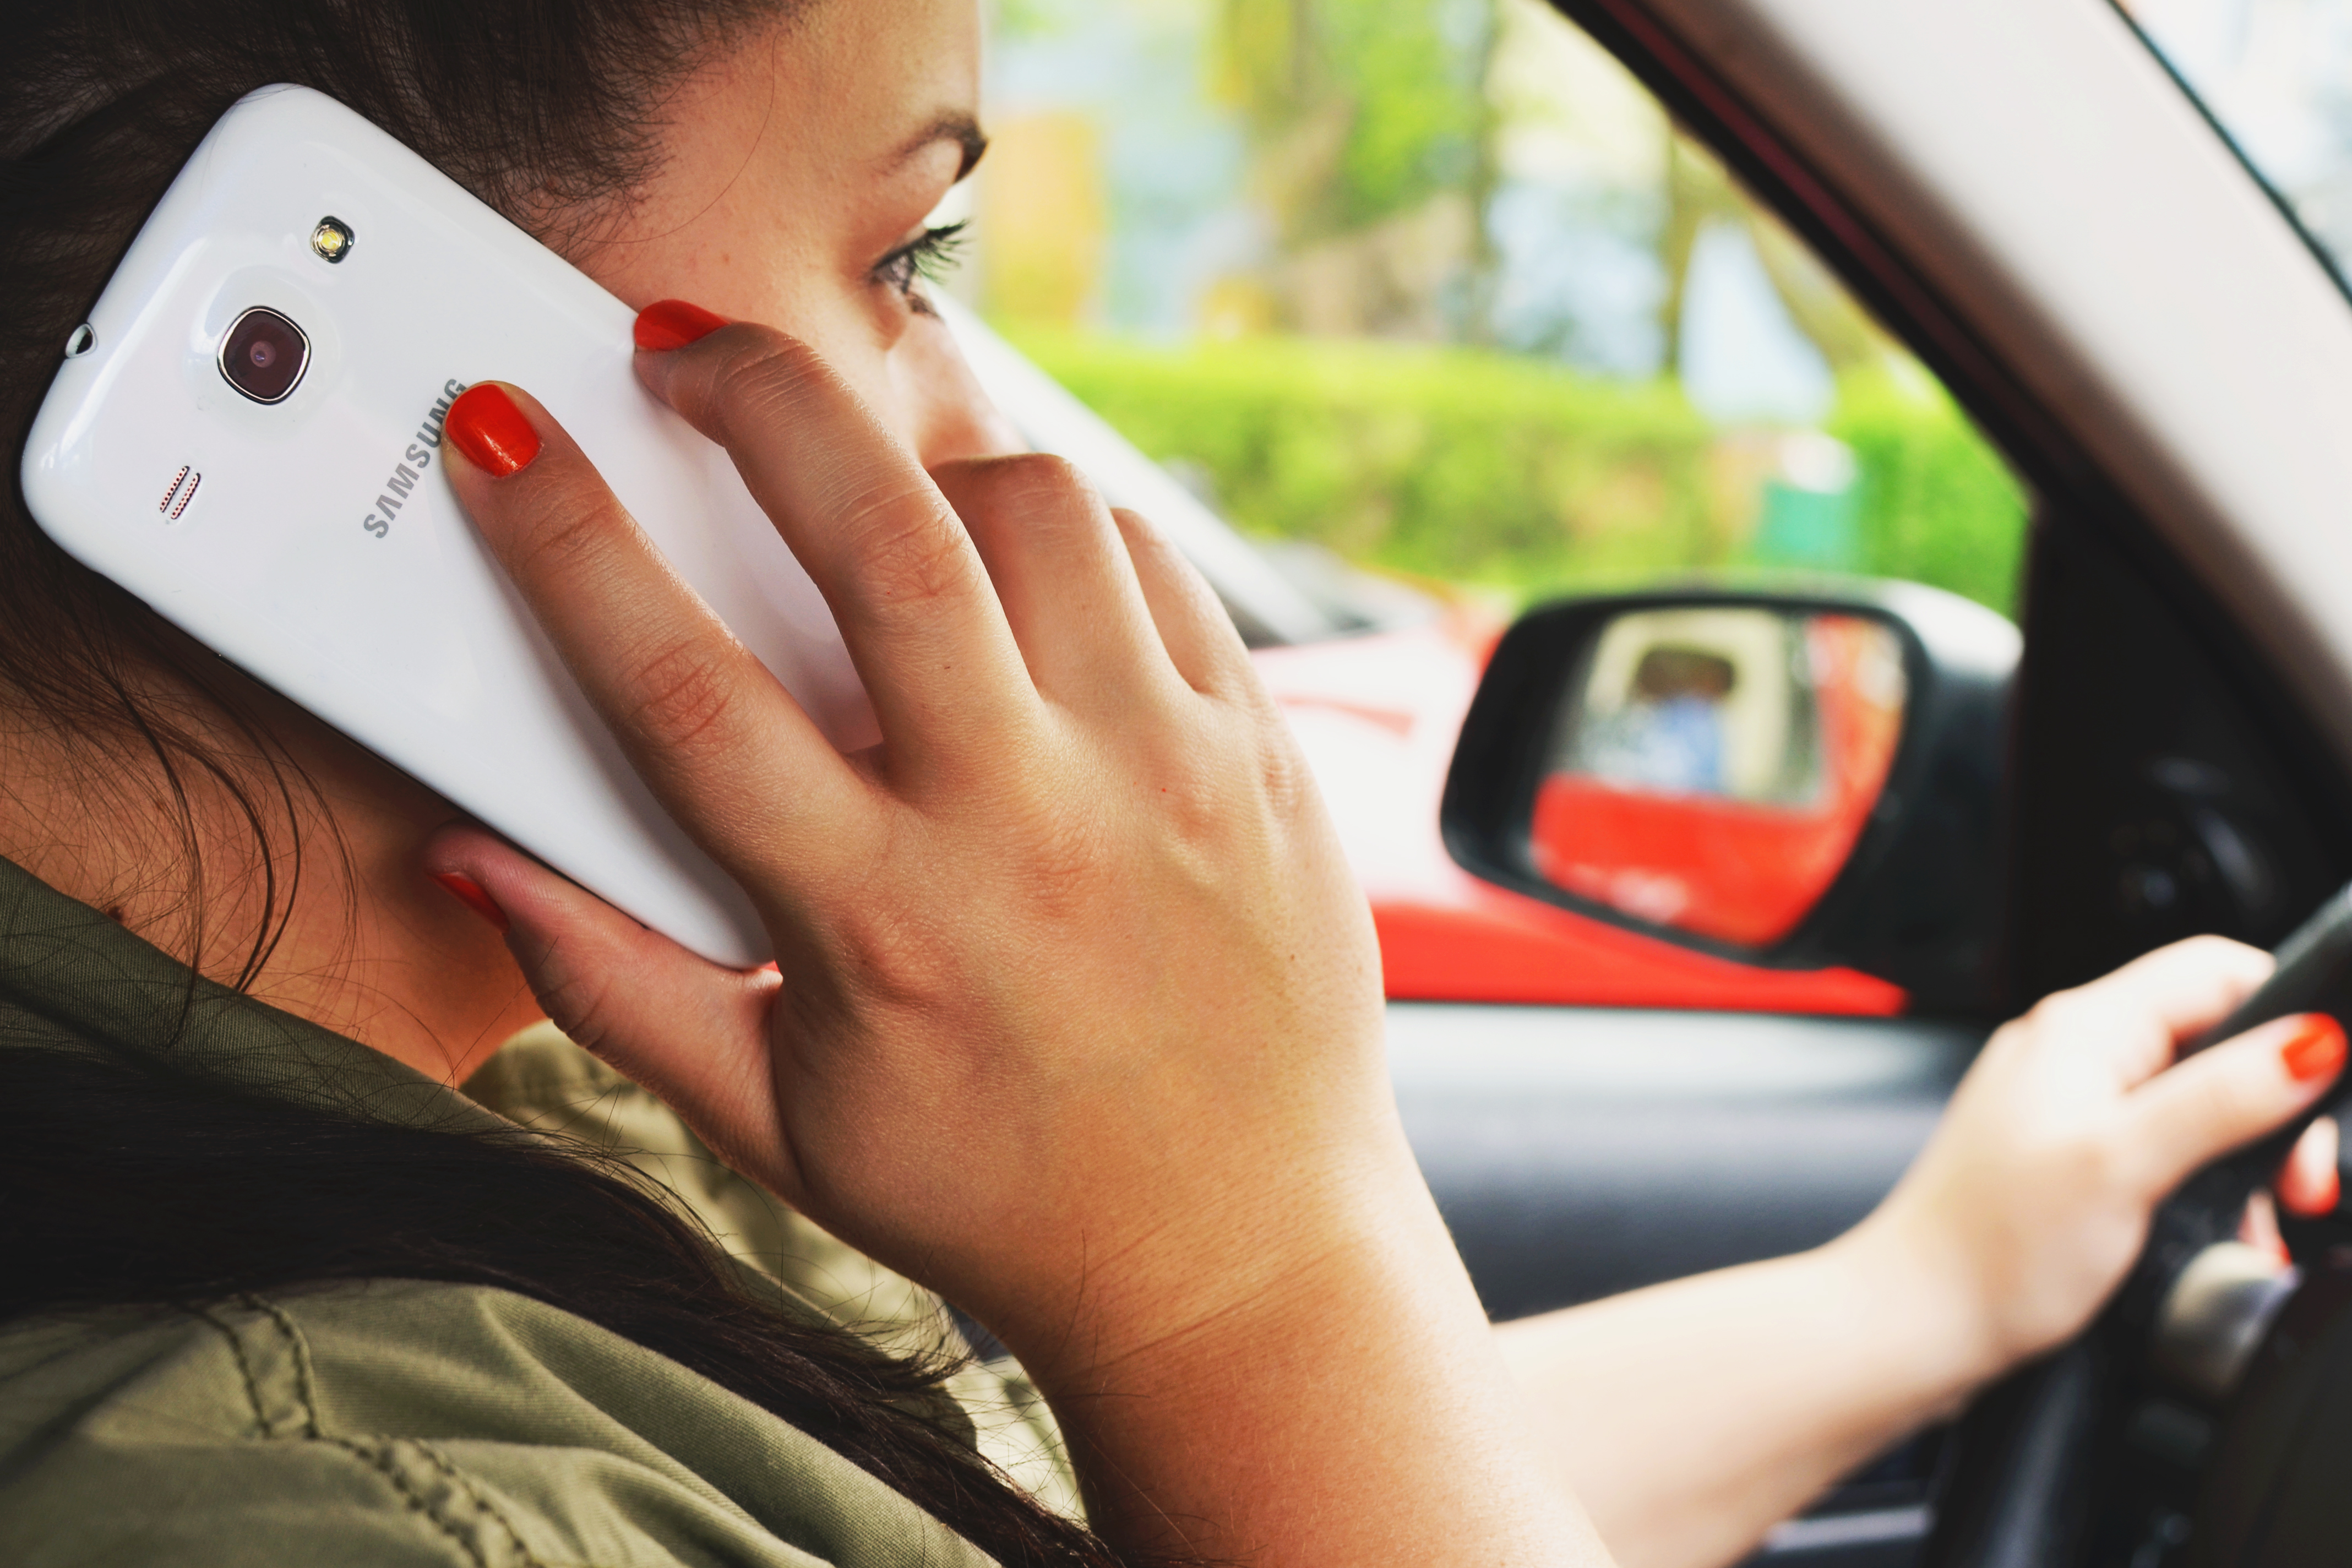 person-woman-smartphone-car